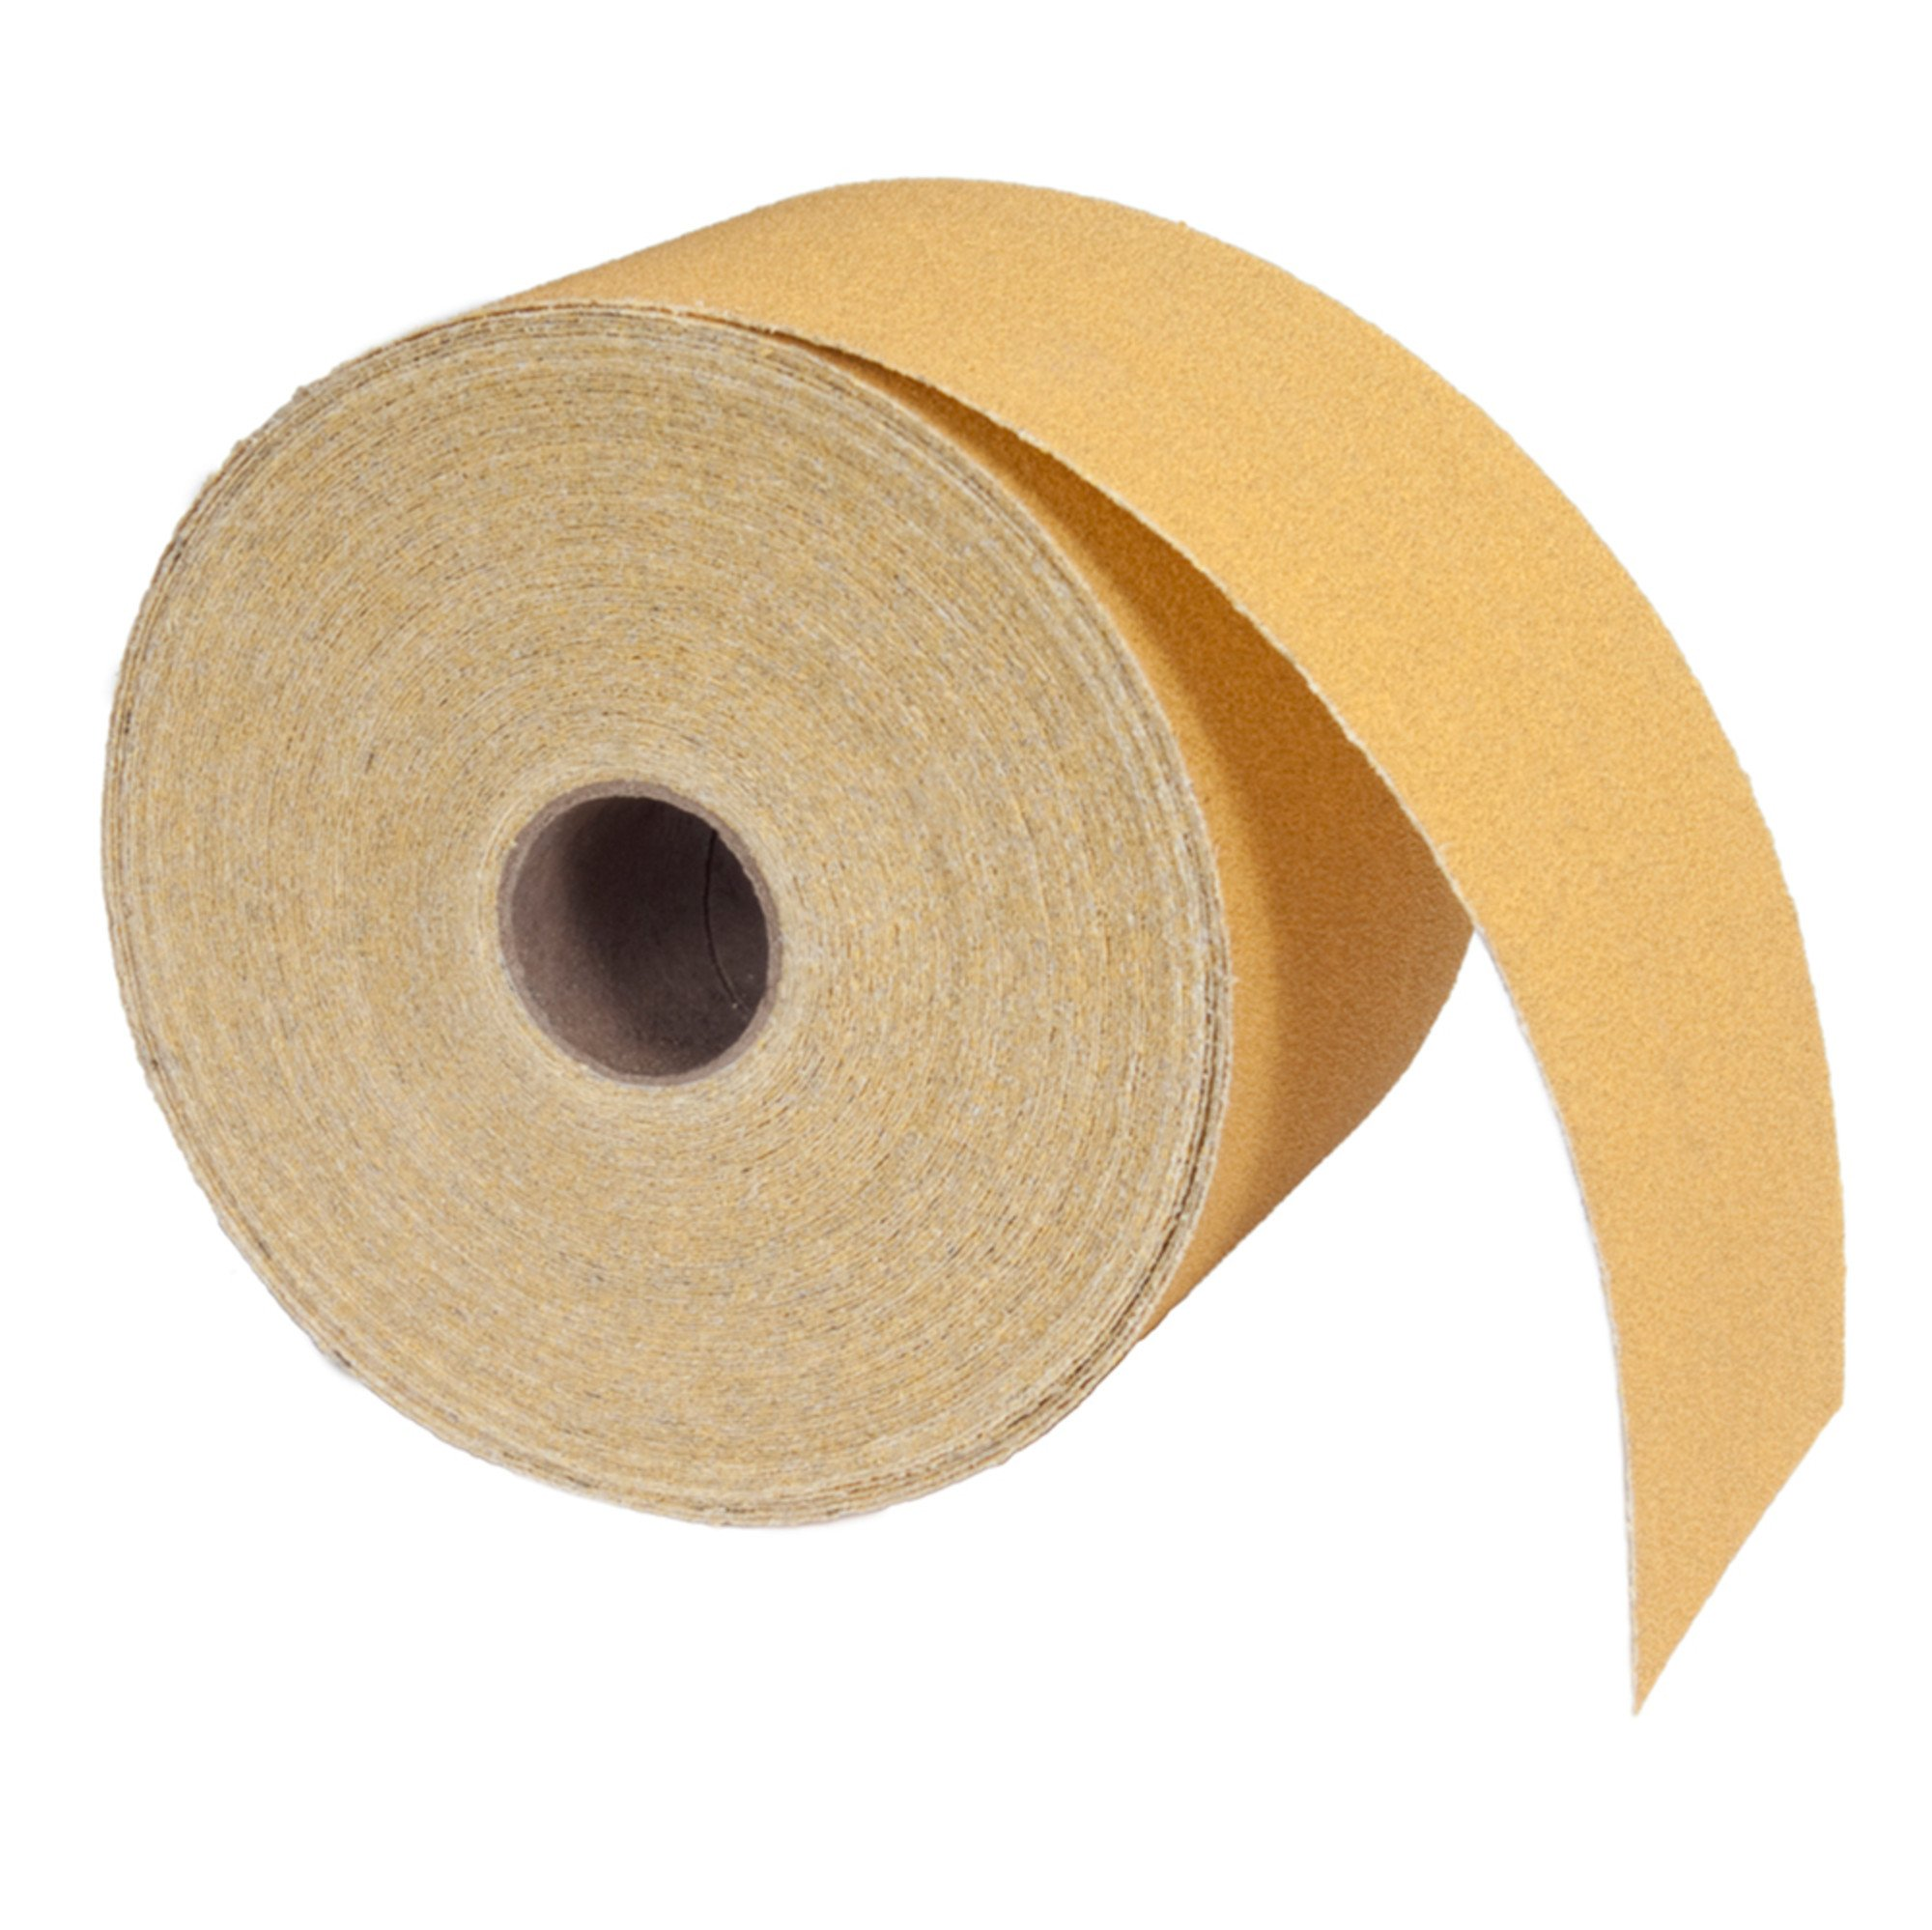 Norton A290 No-Fil Adalox Abrasive Roll, Paper Backing, Pressure Sensitive Adhesive, Aluminum Oxide, Roll 2-3/4'' Width x 20yd Length, Grit 80 (Pack of 1)